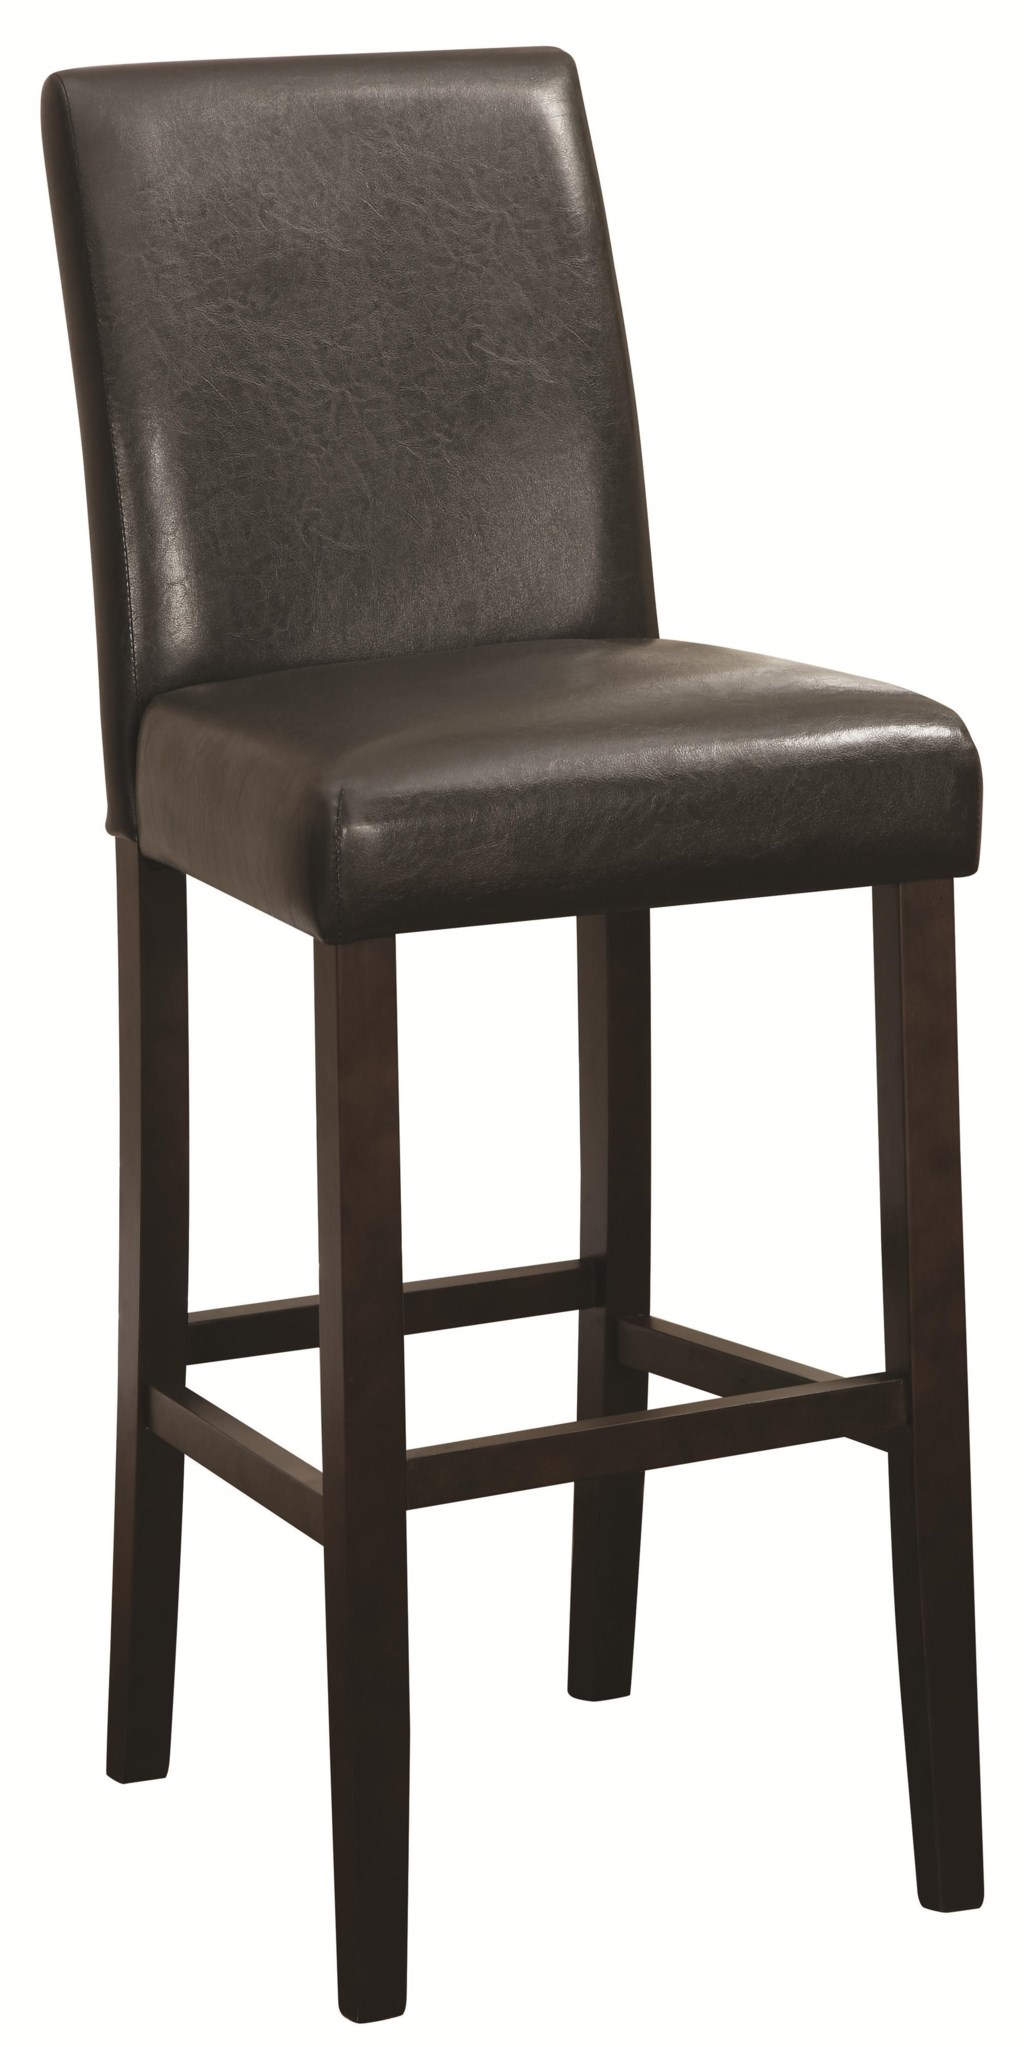 Coaster Dining Chairs And Bar Stools 29 Bar Stool With Upholstered